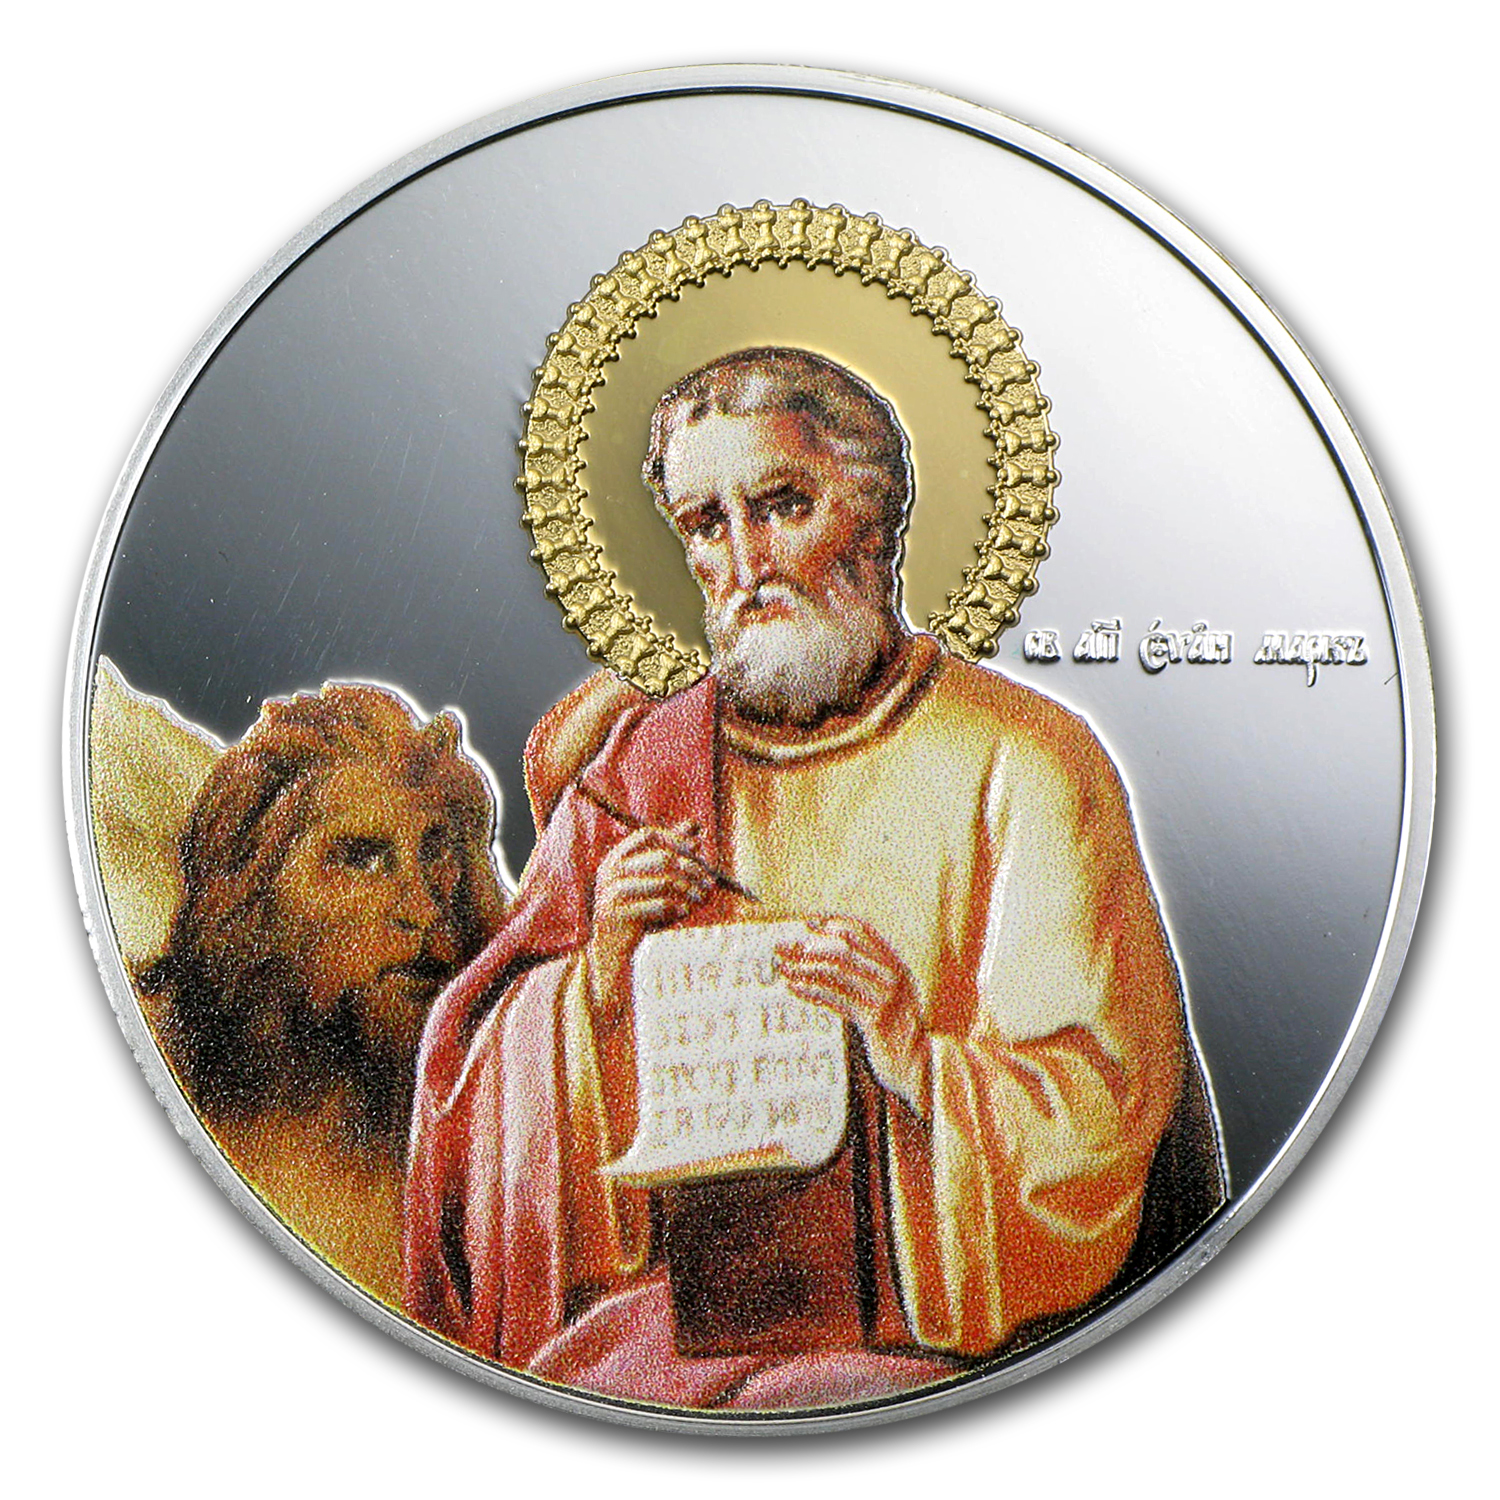 2011 Niue 4-Coin Silver $2 The Evangelists Proof Set